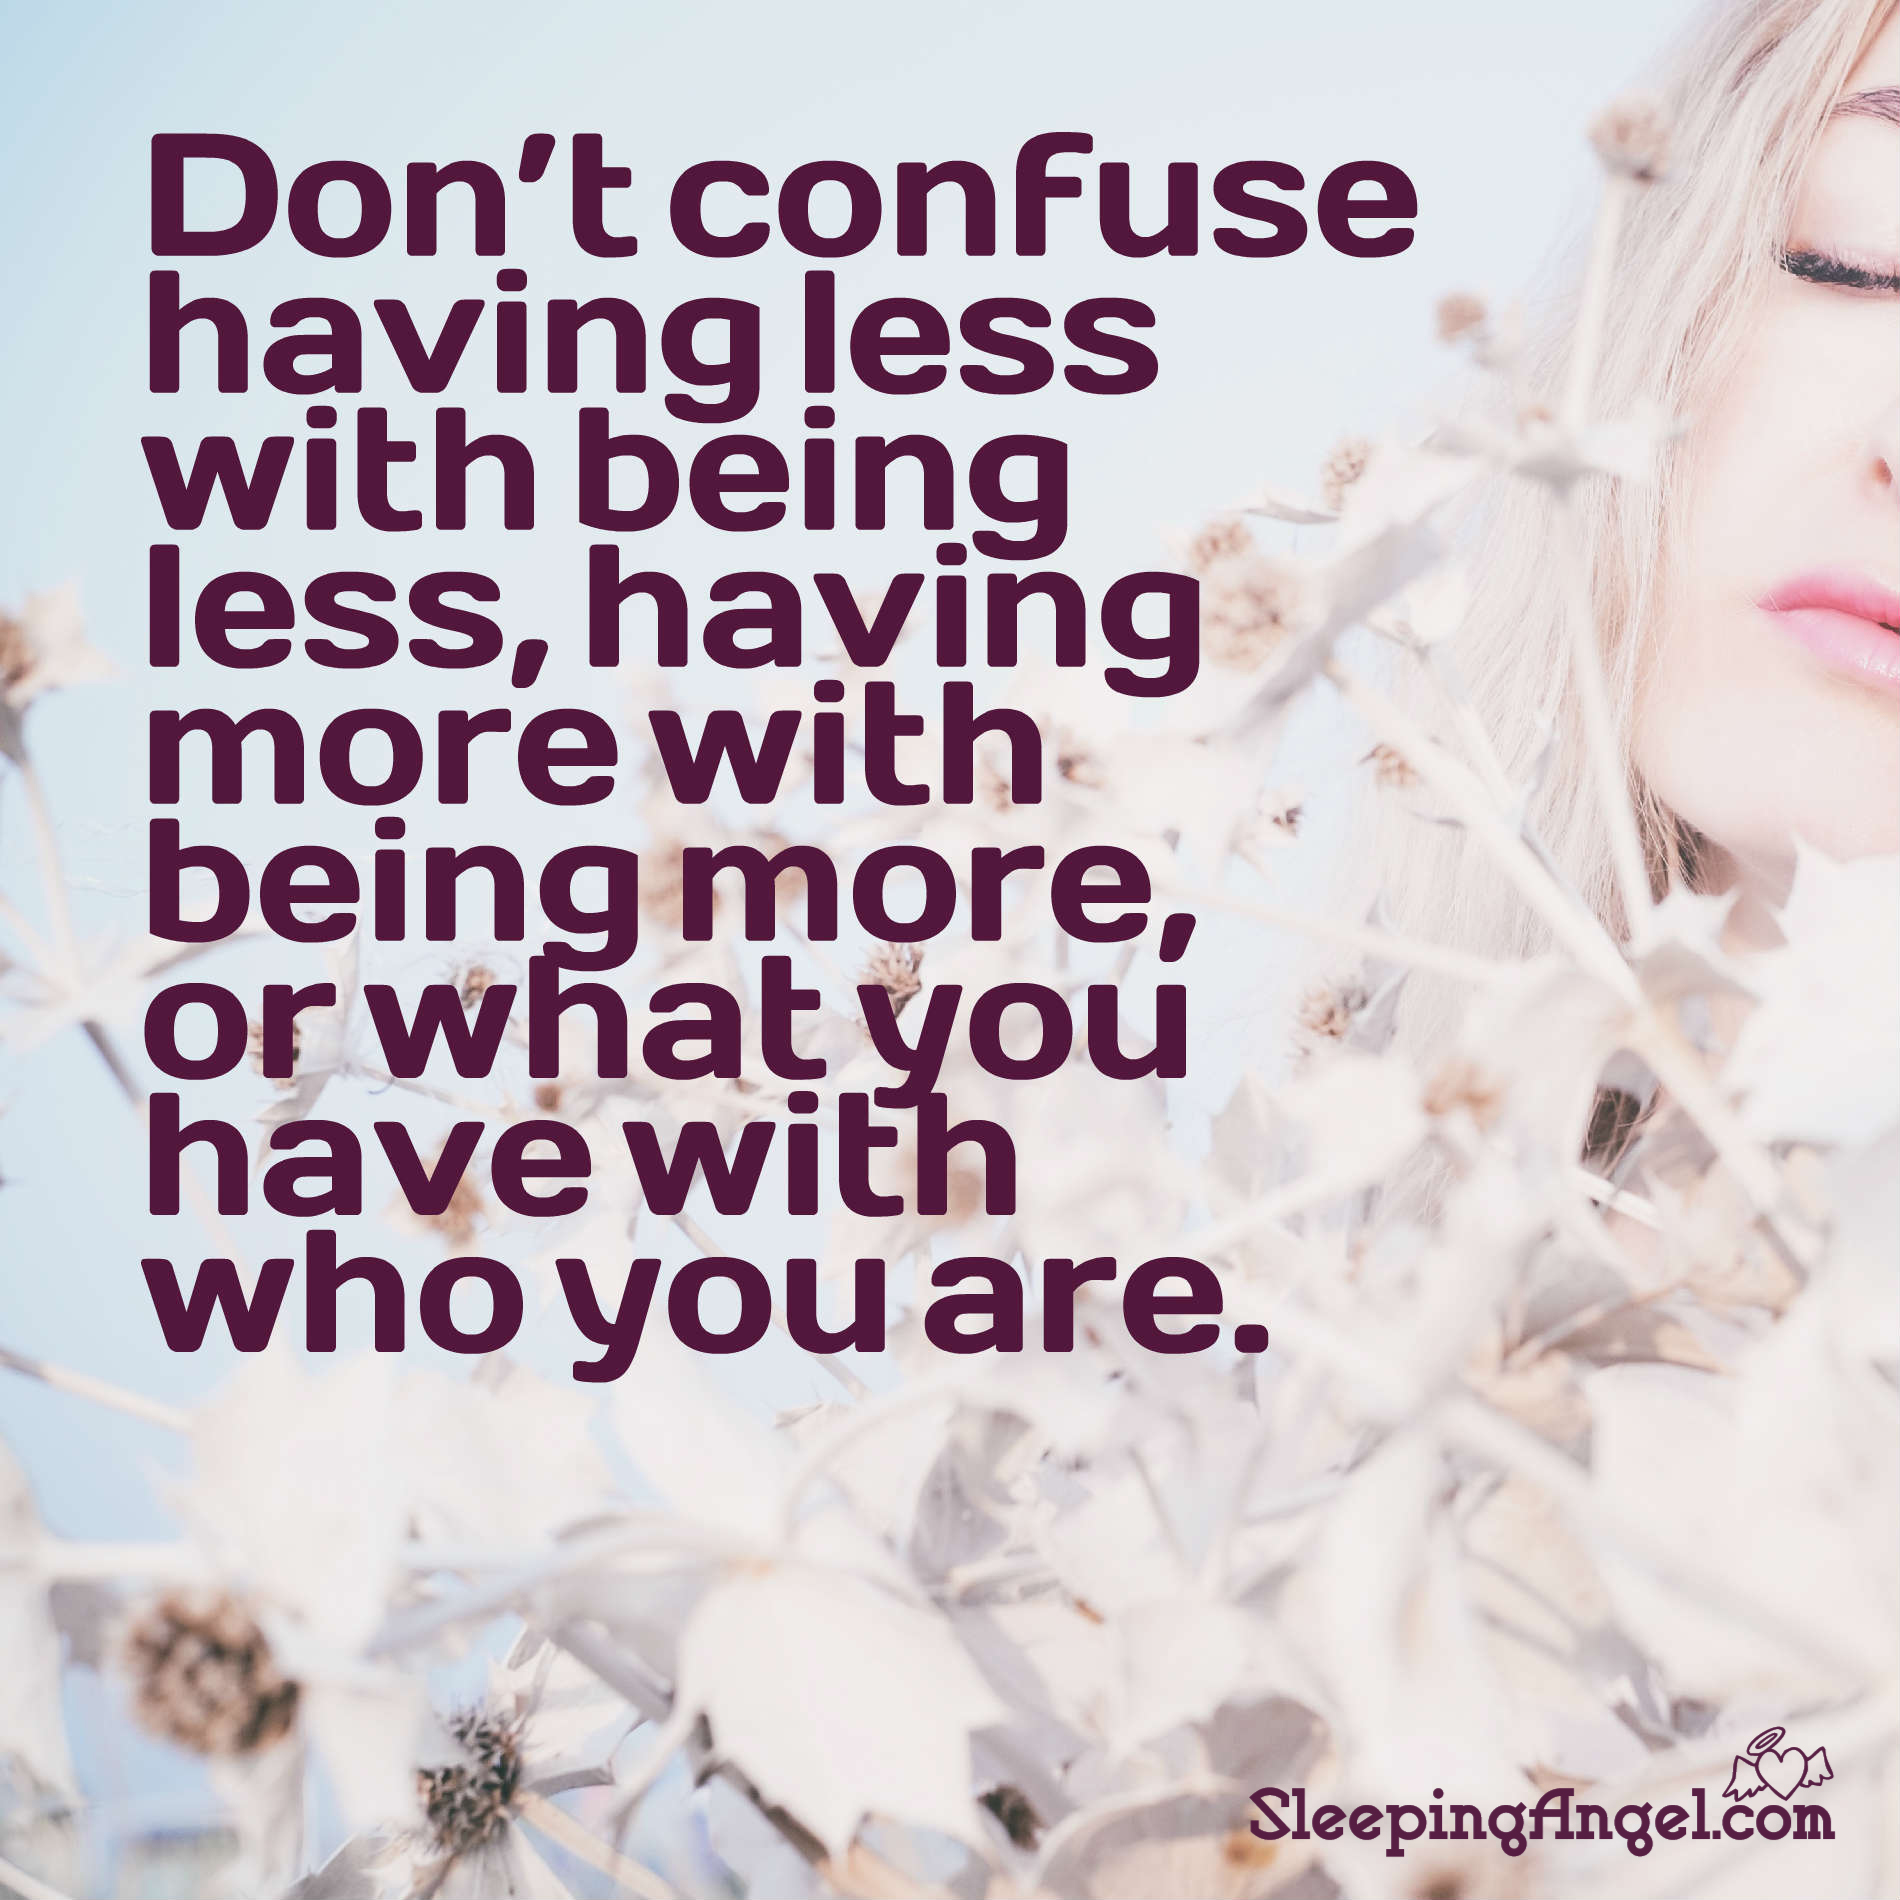 Don't Confuse Quote